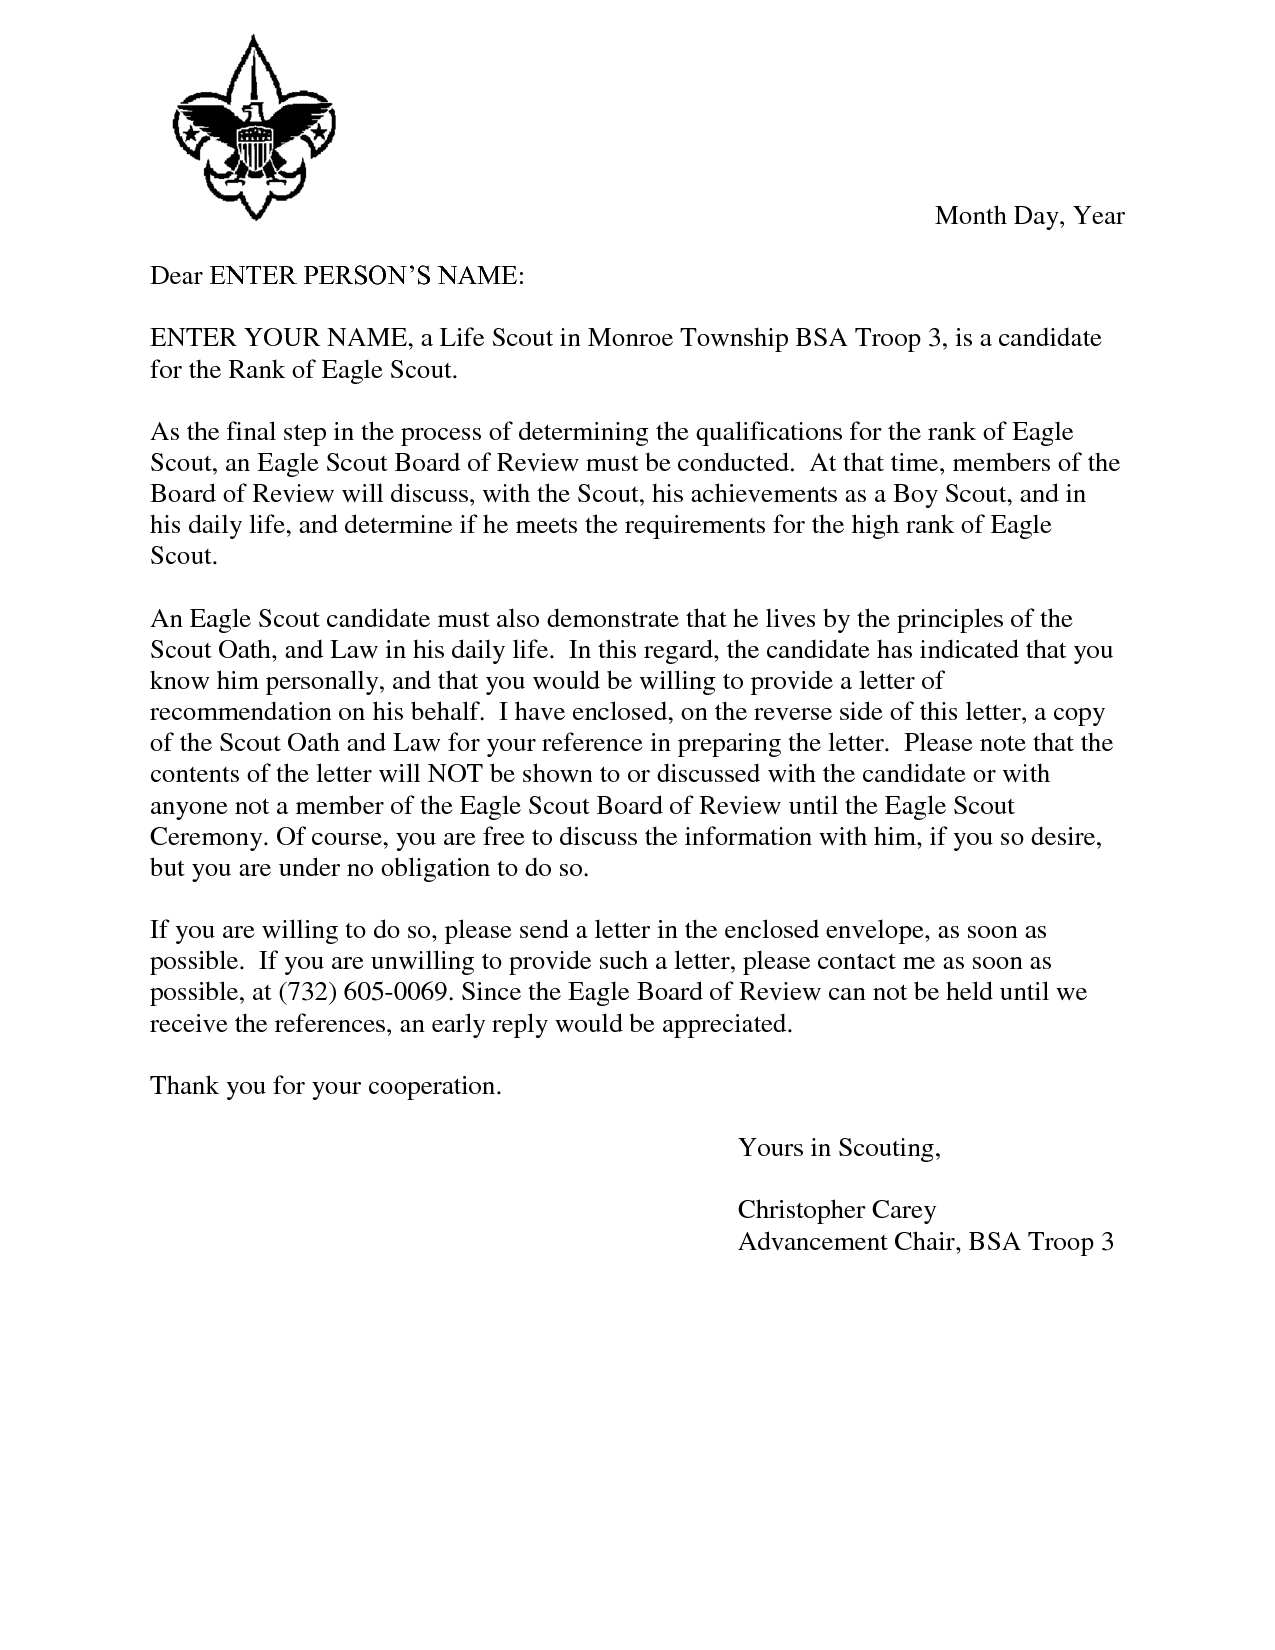 Letter to Troops Template - Eagle Scout Reference Request Sample Letter Doc 7 by Hfr990q